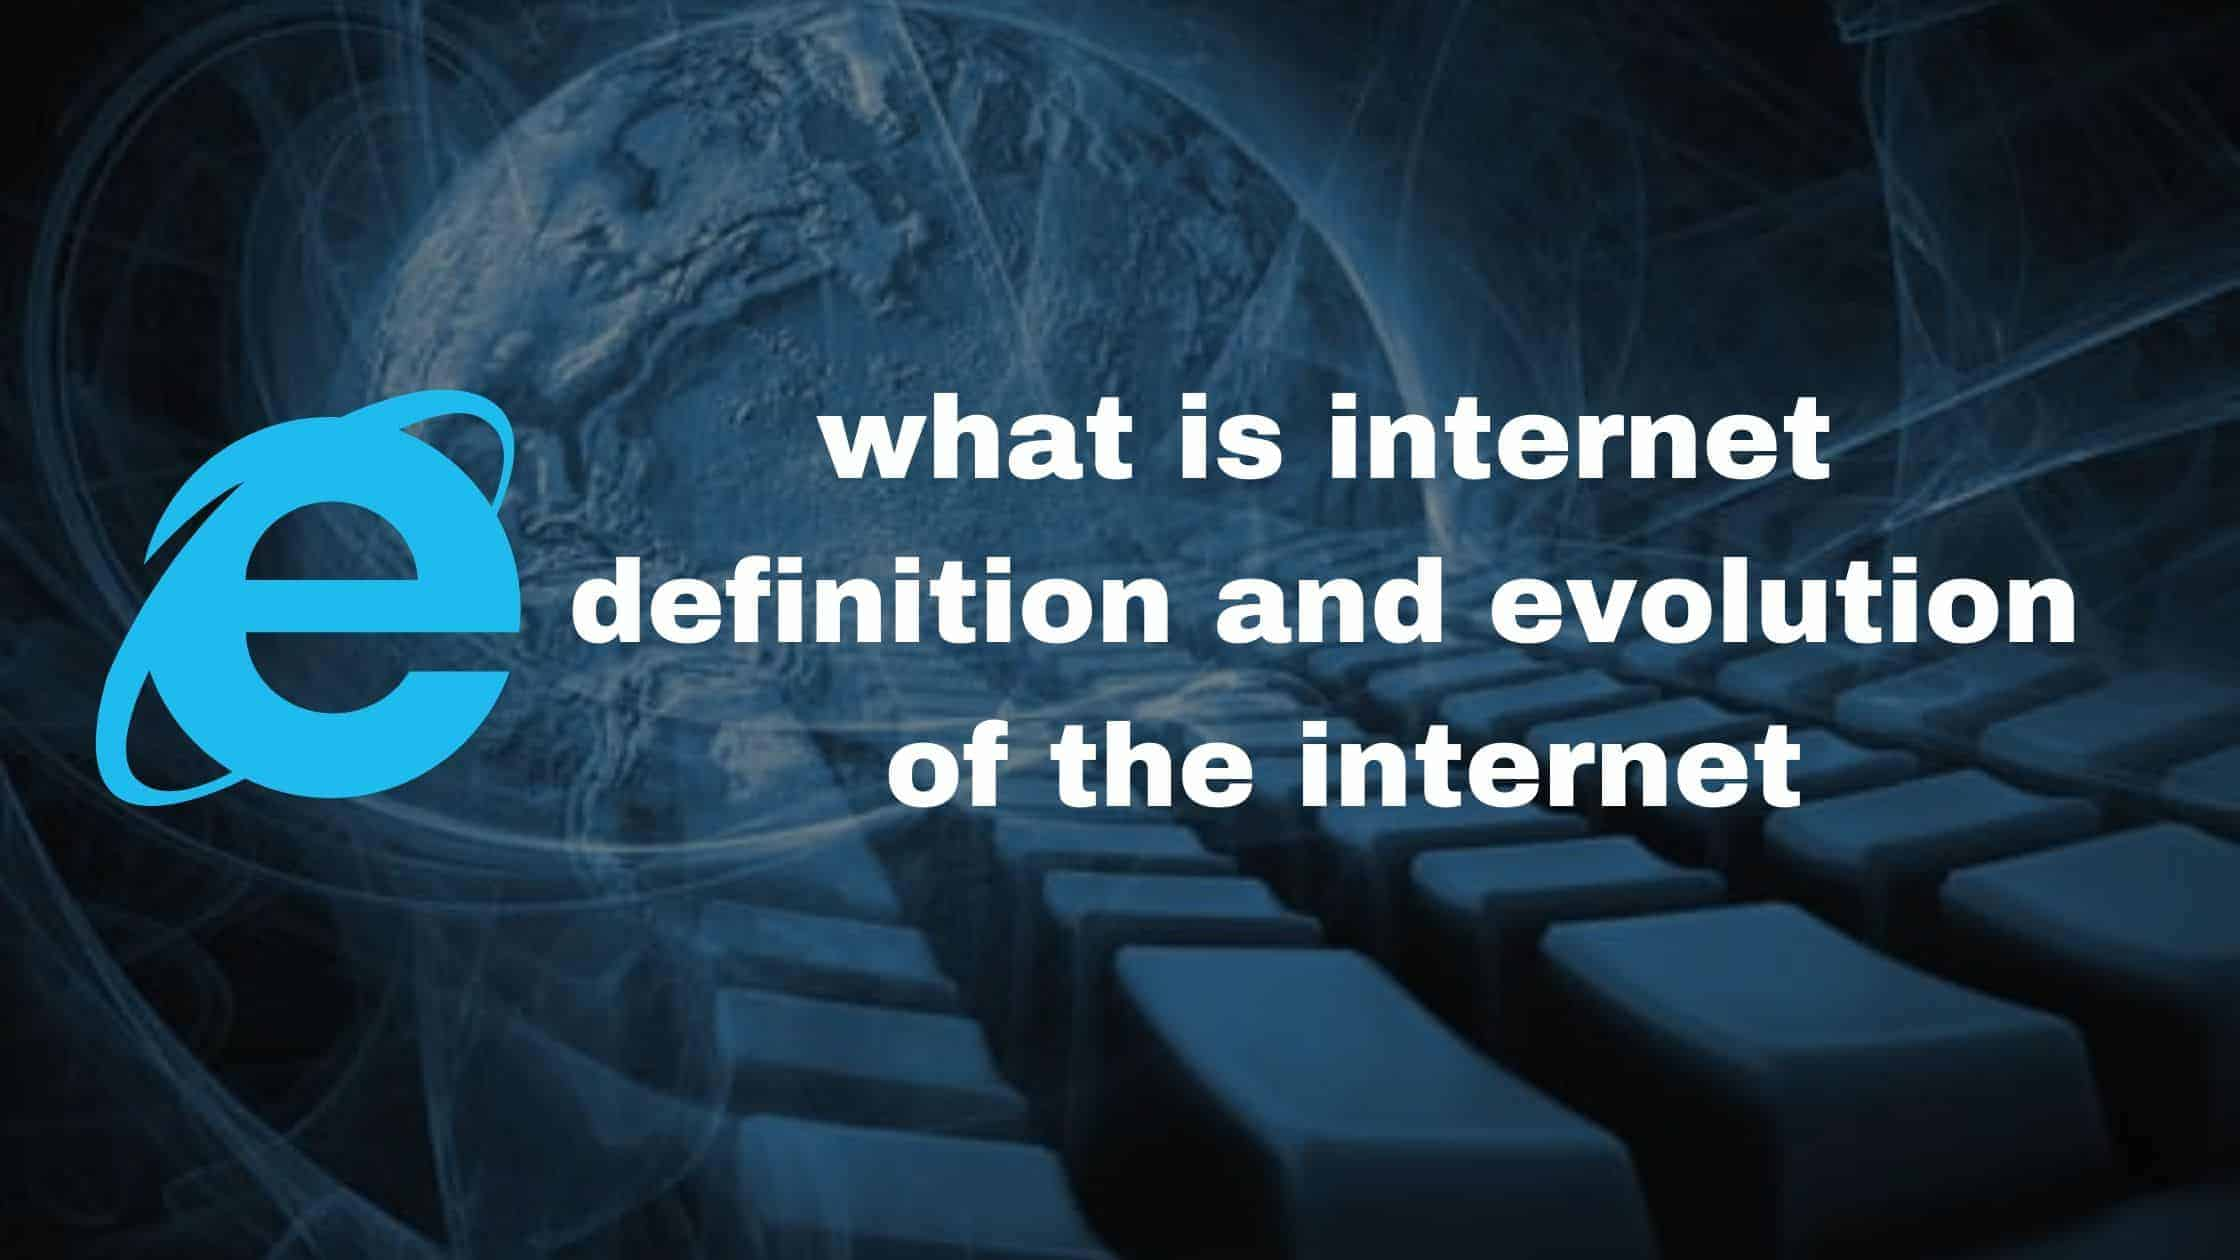 what is internet definition and evolution of the internet